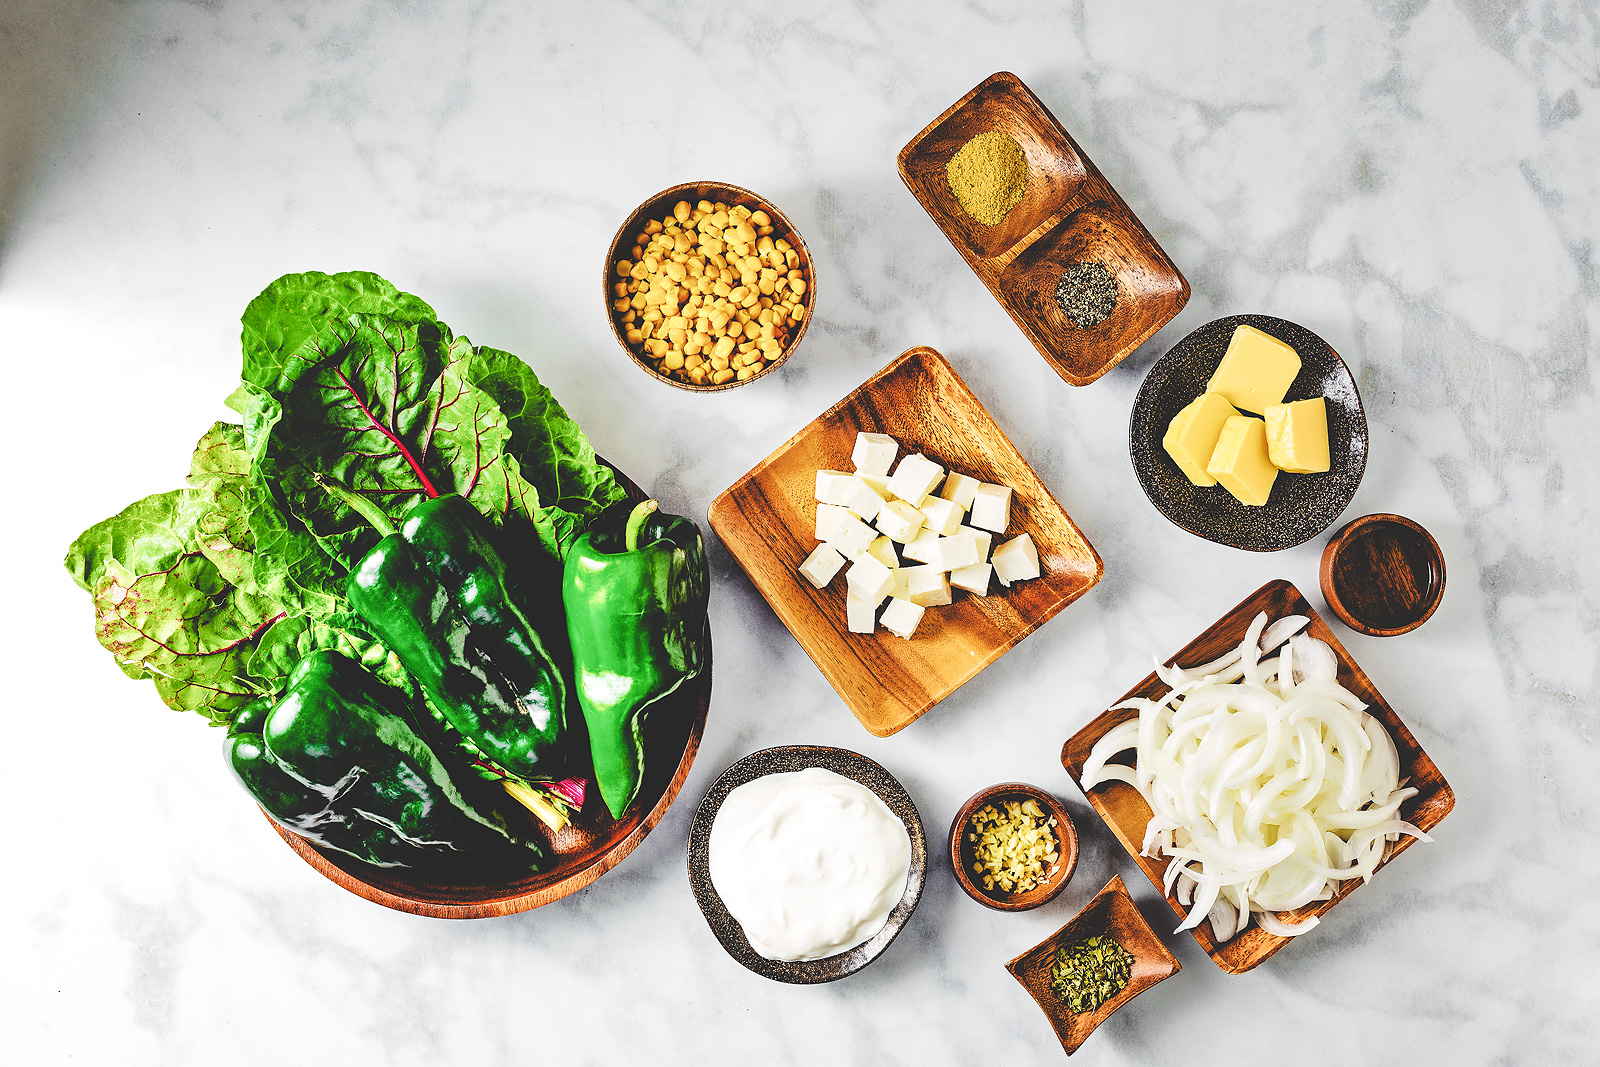 Ingredients include poblanos, chard, corn, onions, cheese, Mexican crema.